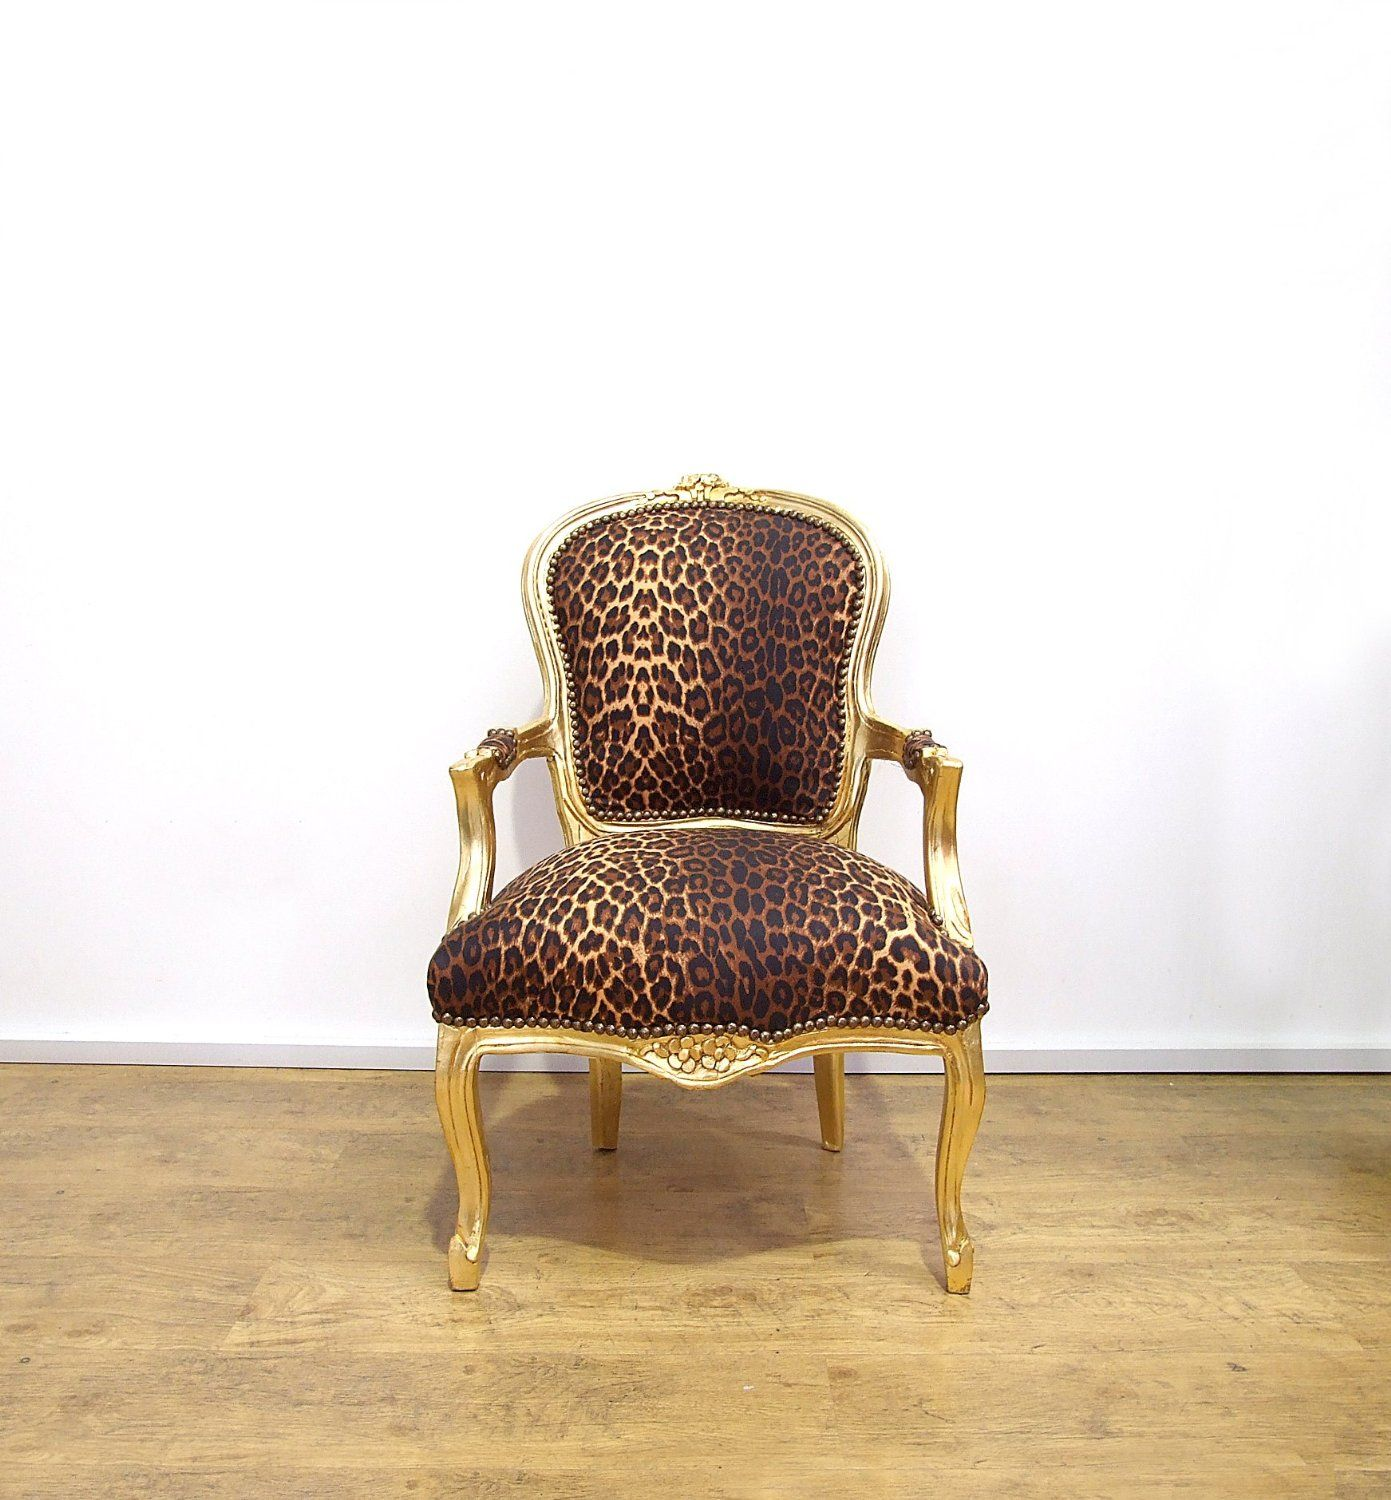 wooden chair frames for upholstery uk silk upholstered vintage retro french louis xv style with leopard